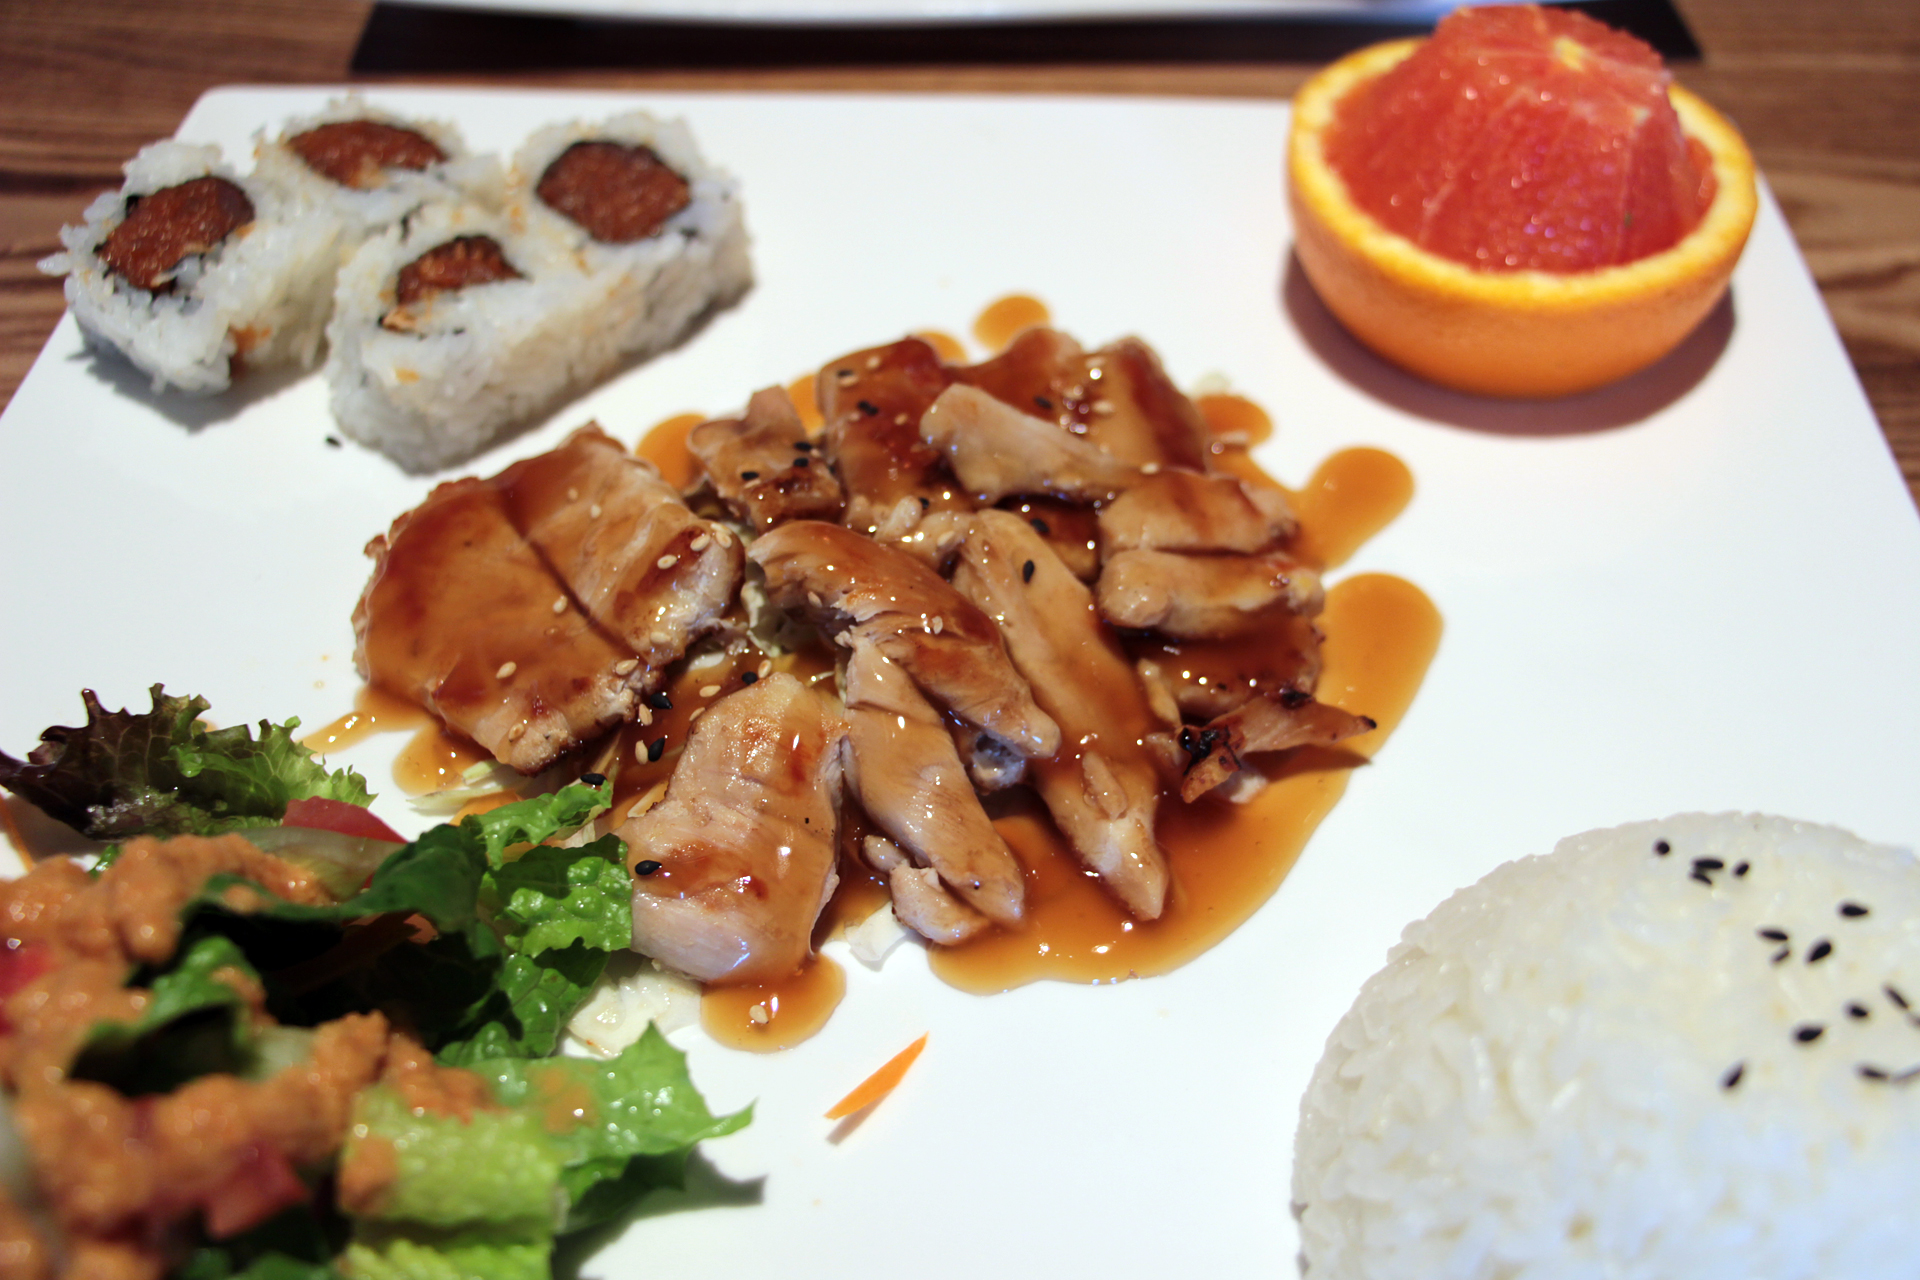 Chicken teriyaki lunch special.